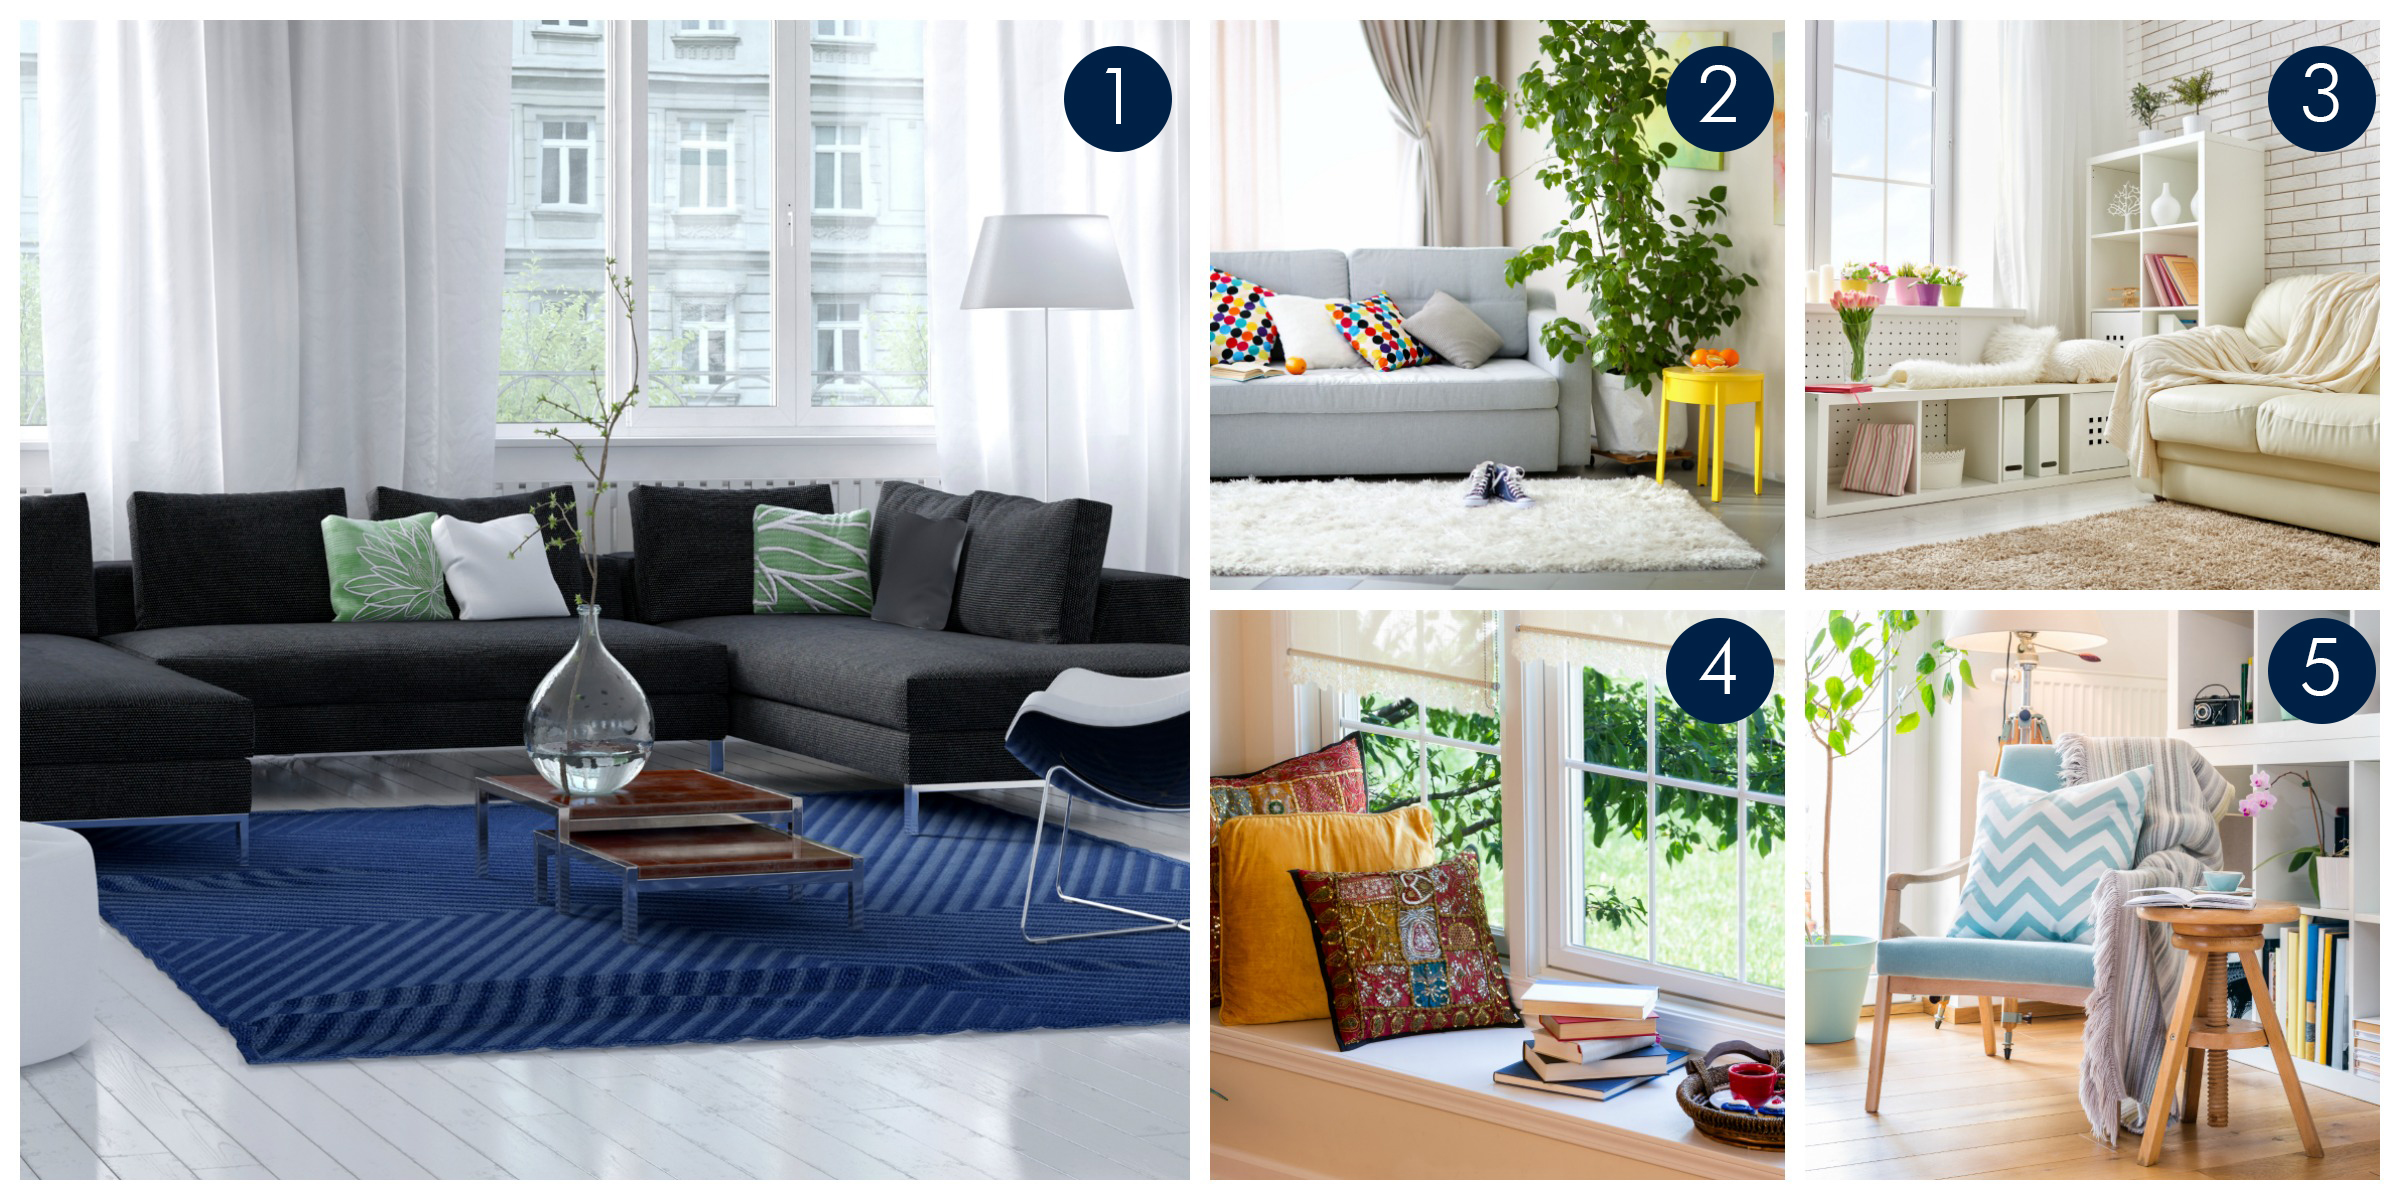 Great-Ways-to-use-the-Corners-of-your-CLV-Group-Apartment-Collage1